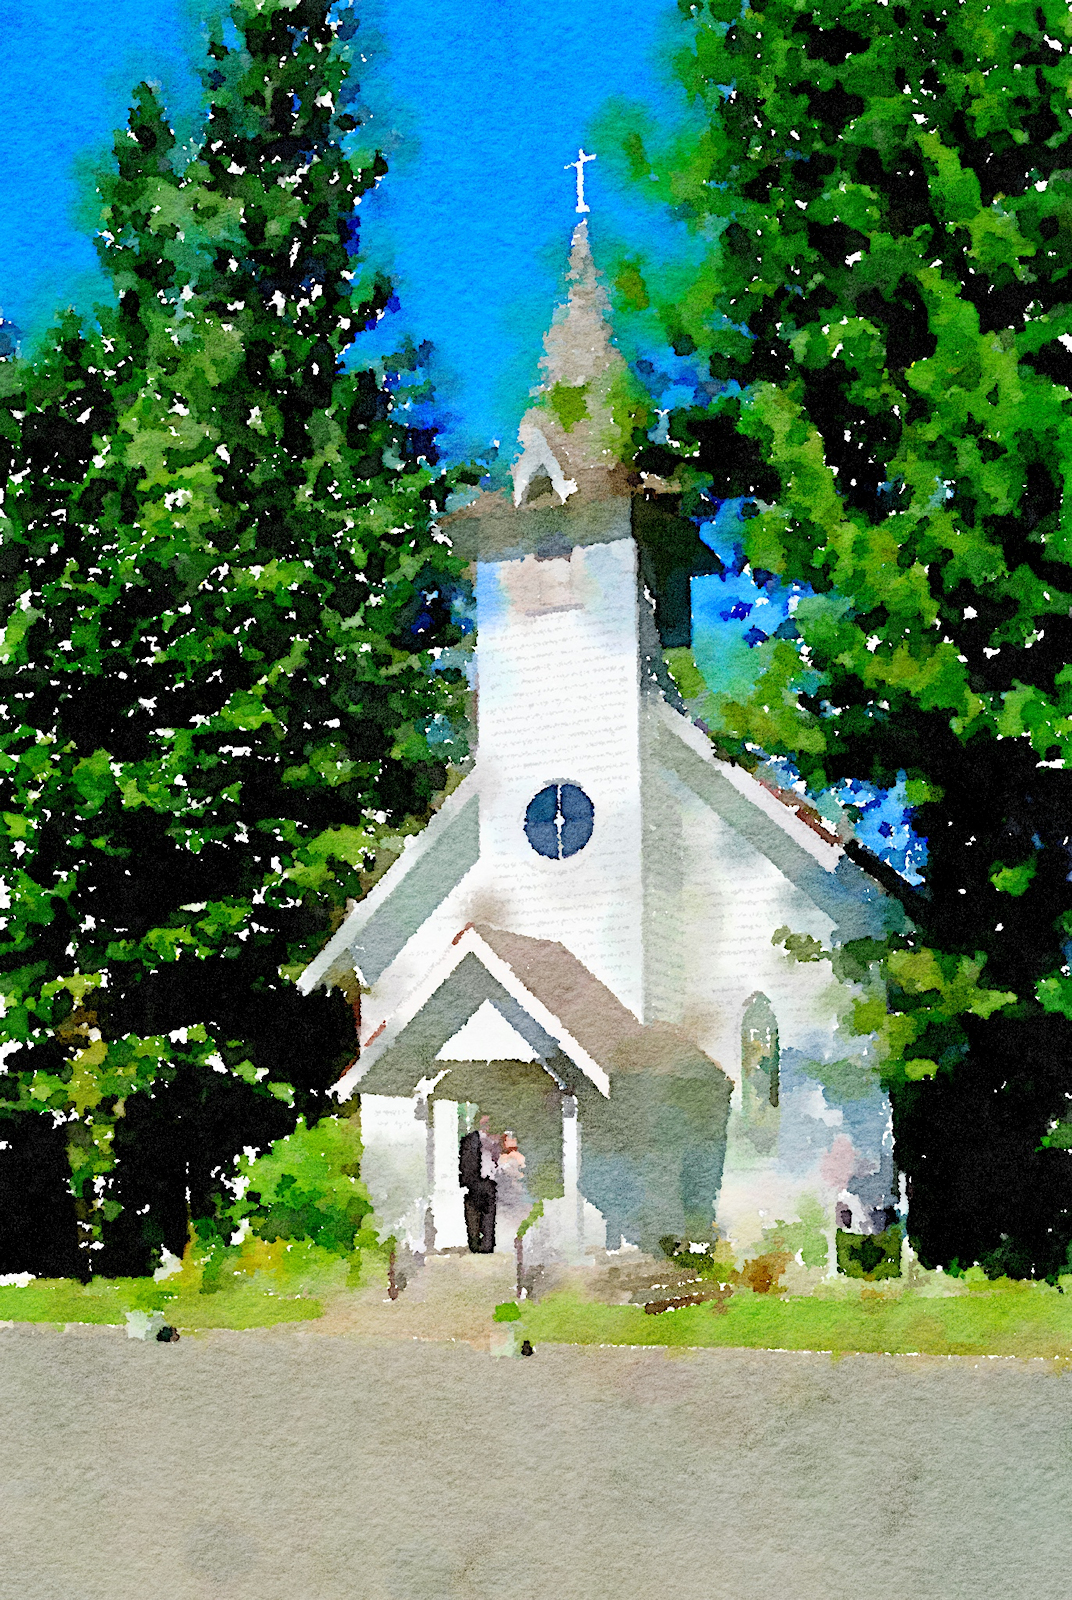 wedding day chapel picture turned into a watercolor using Waterlogue app